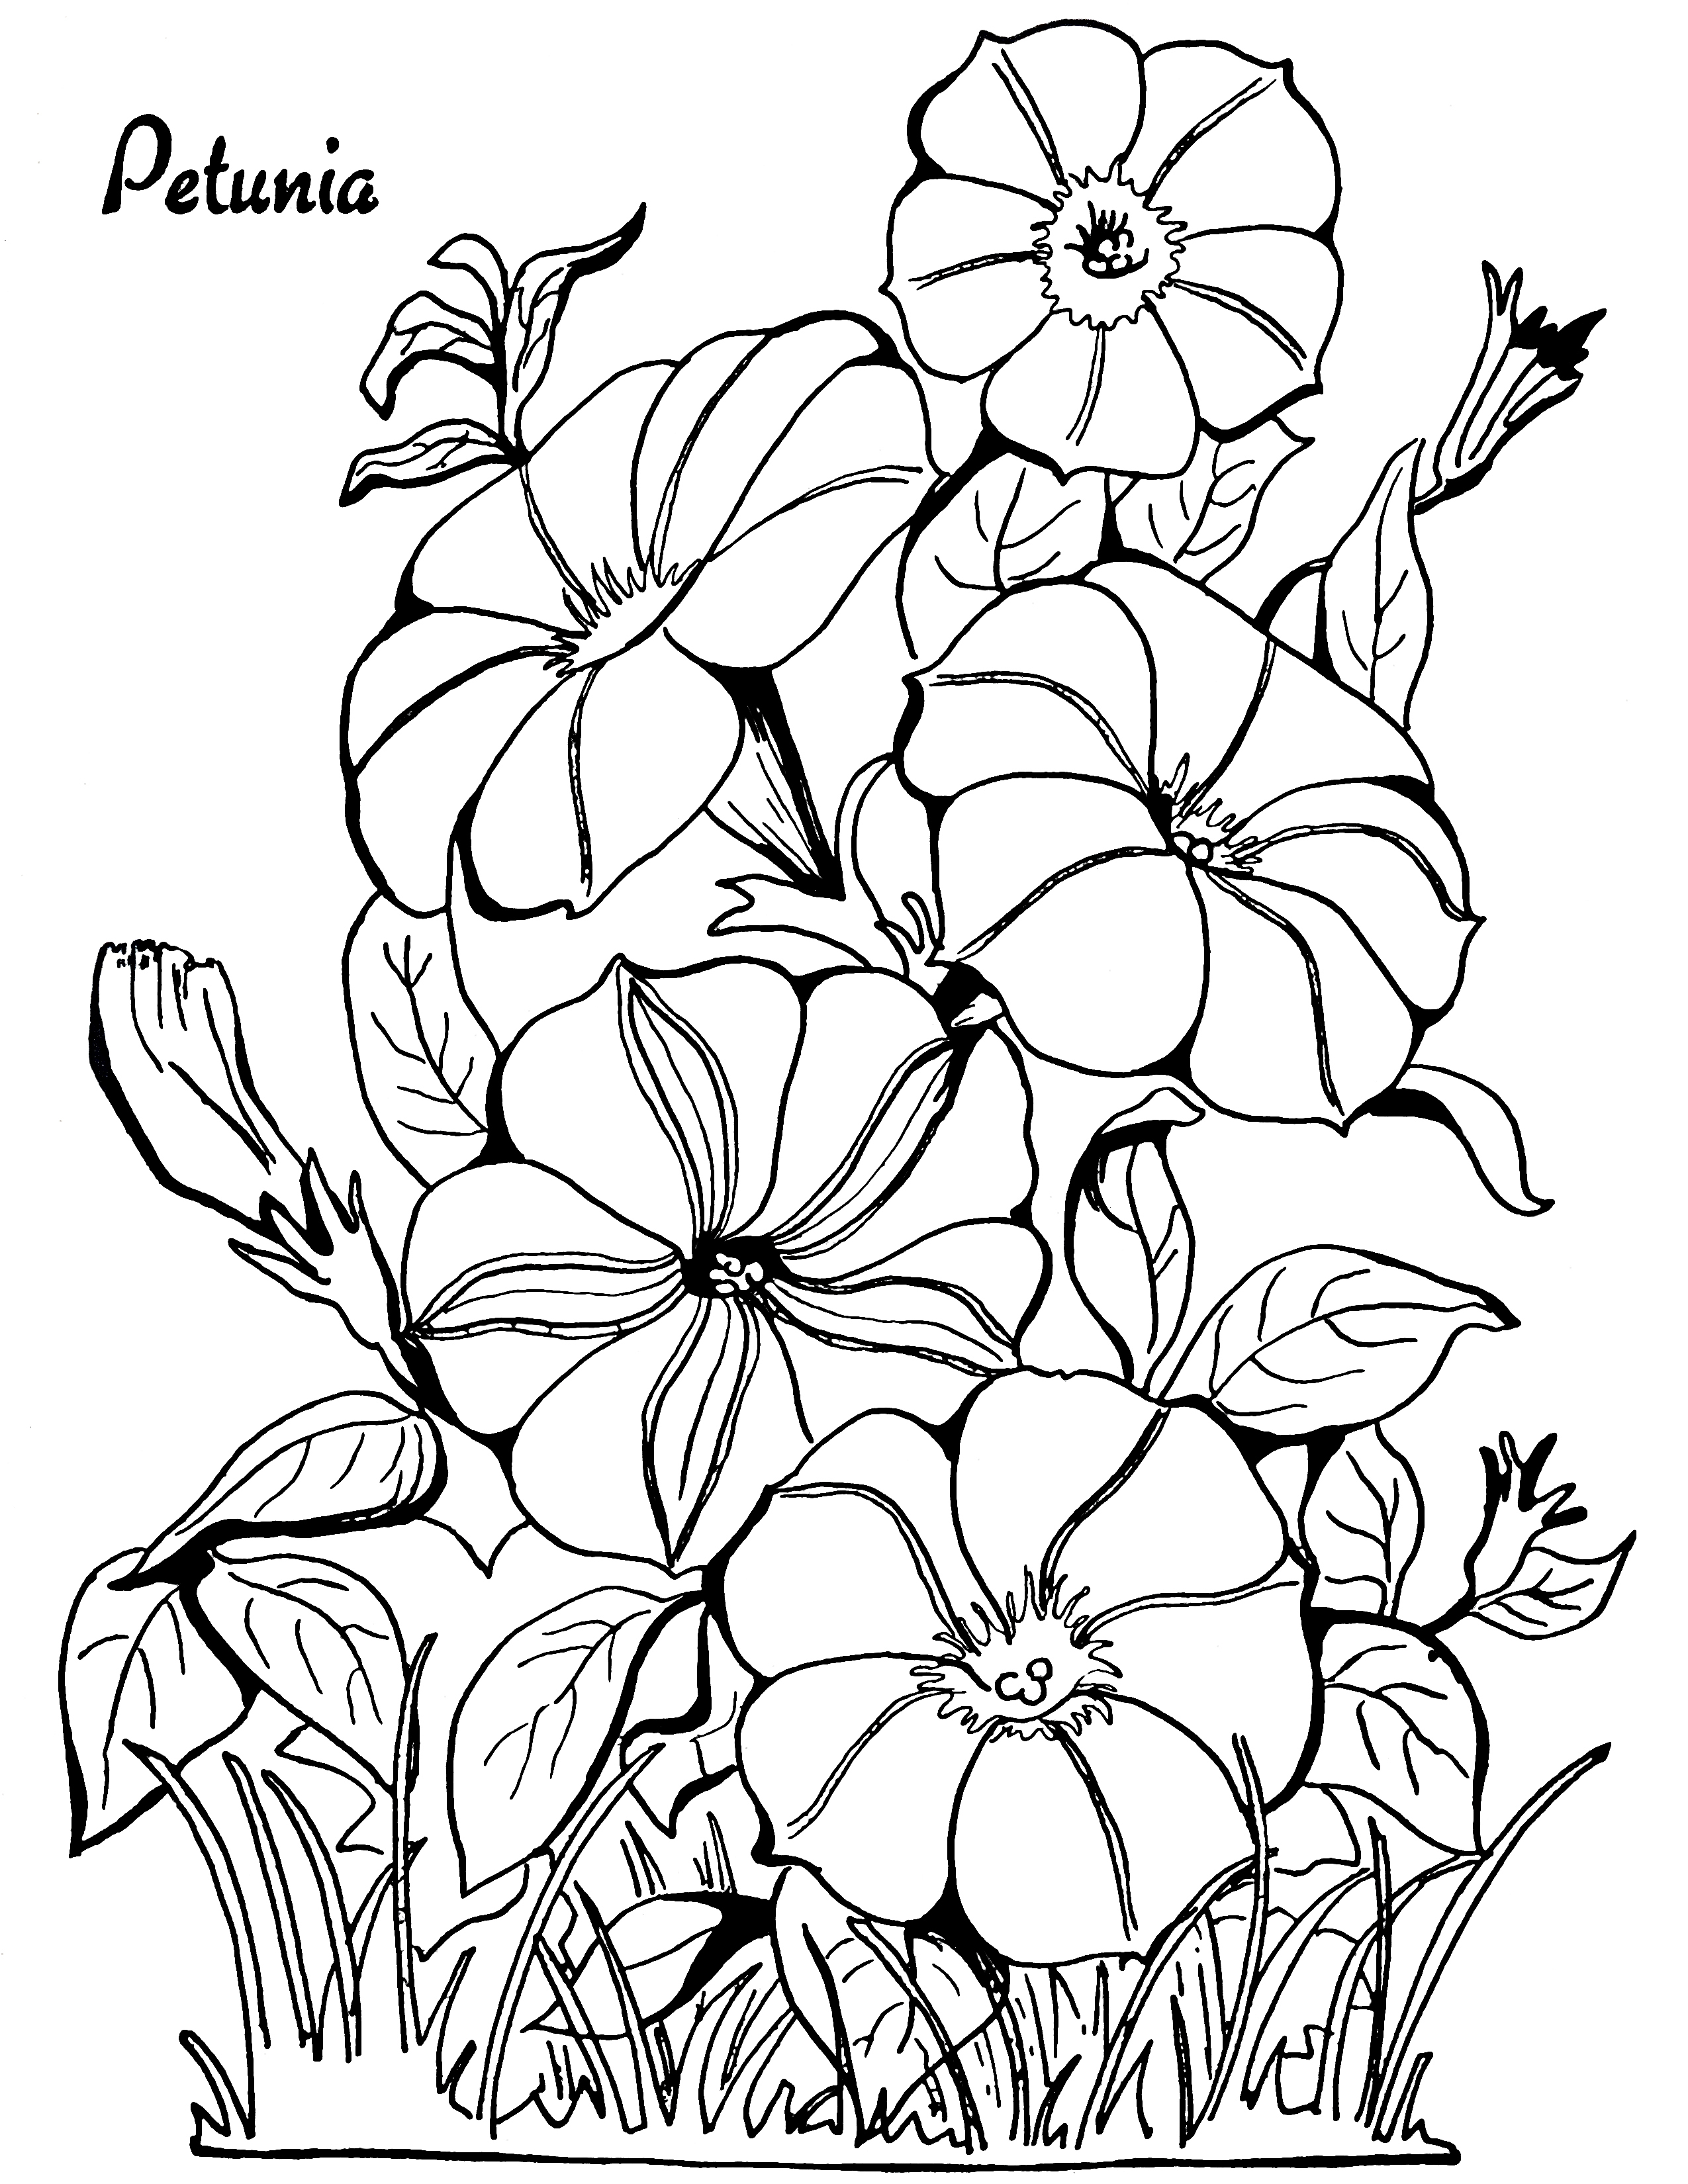 full size coloring sheets full size coloring pages for adults at getcoloringscom size full sheets coloring